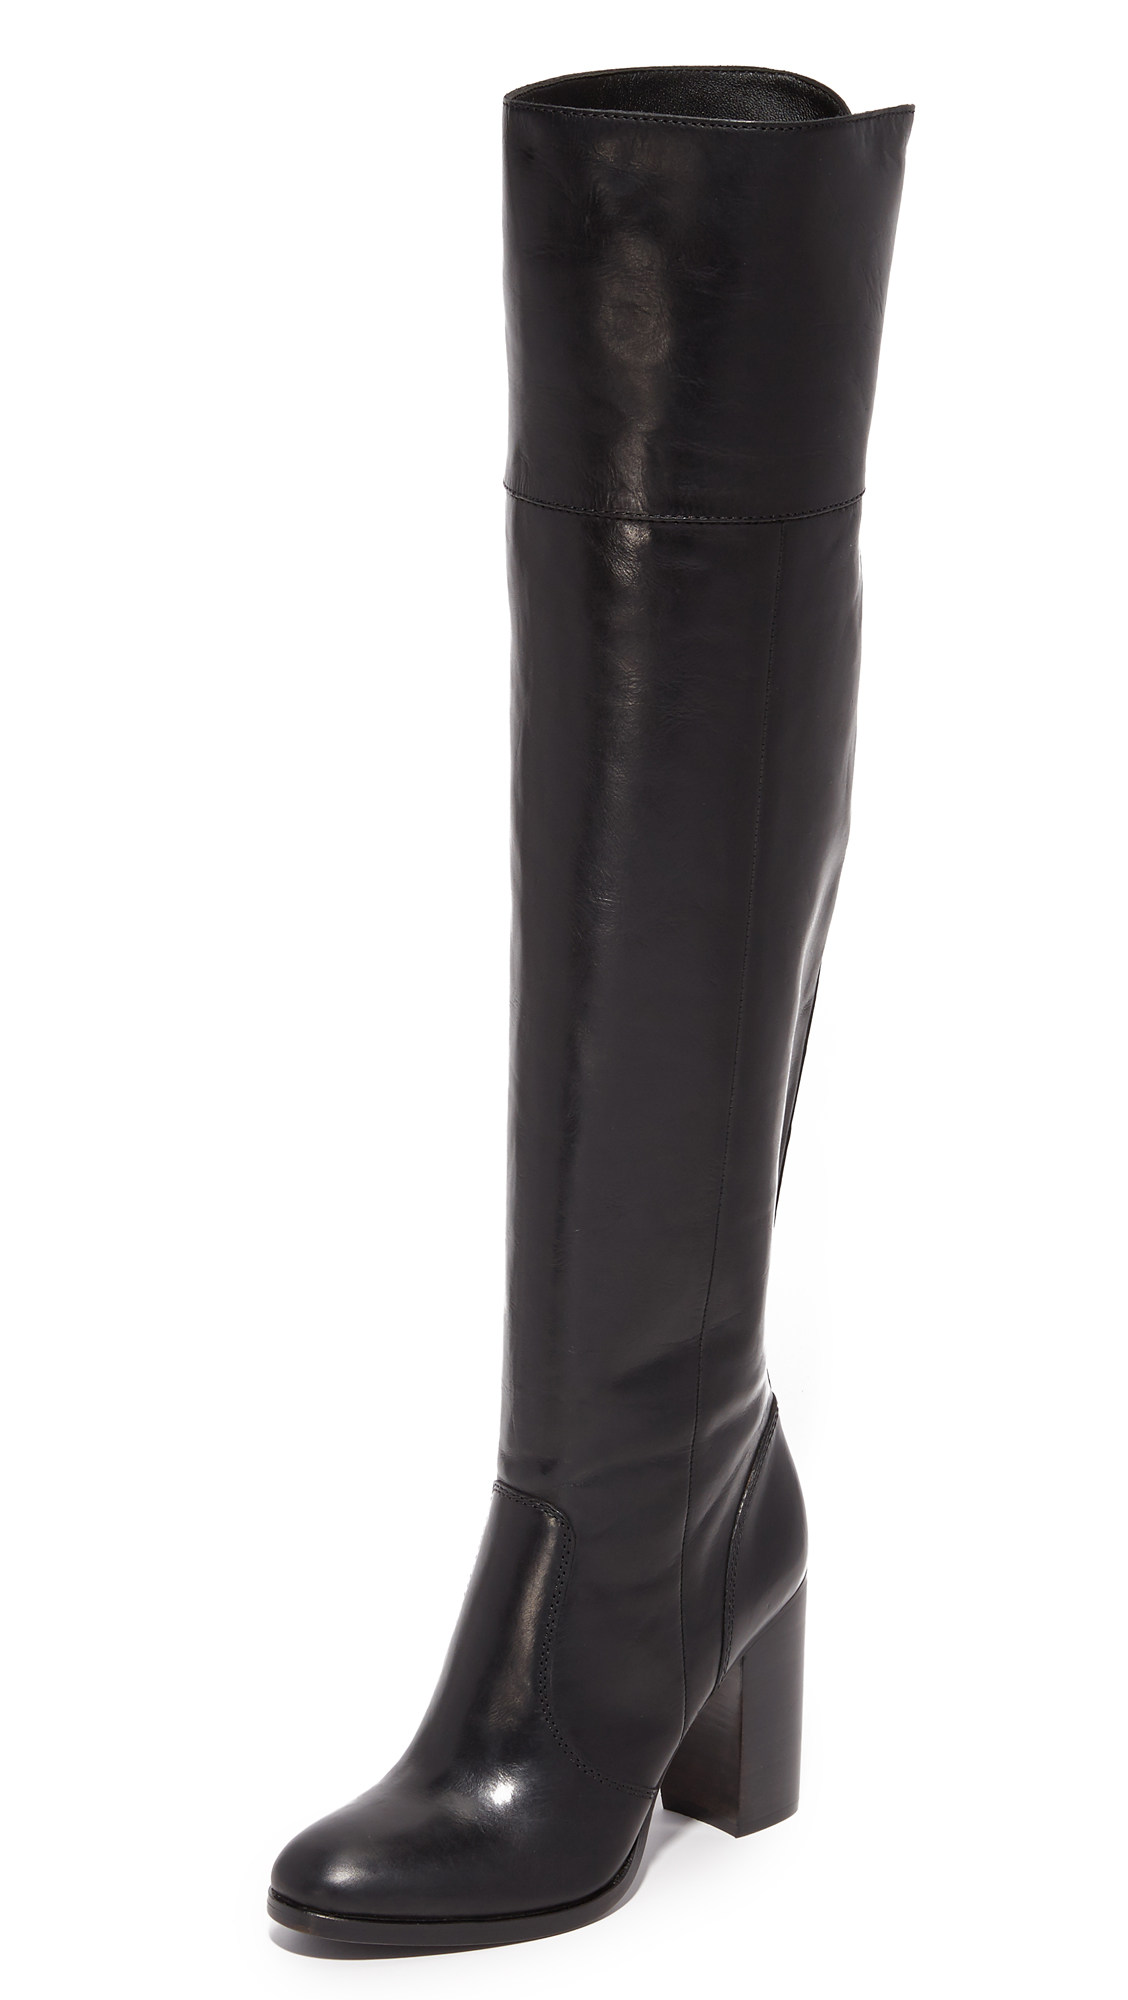 Frye Claude Over The Knee Boots - Black at Shopbop